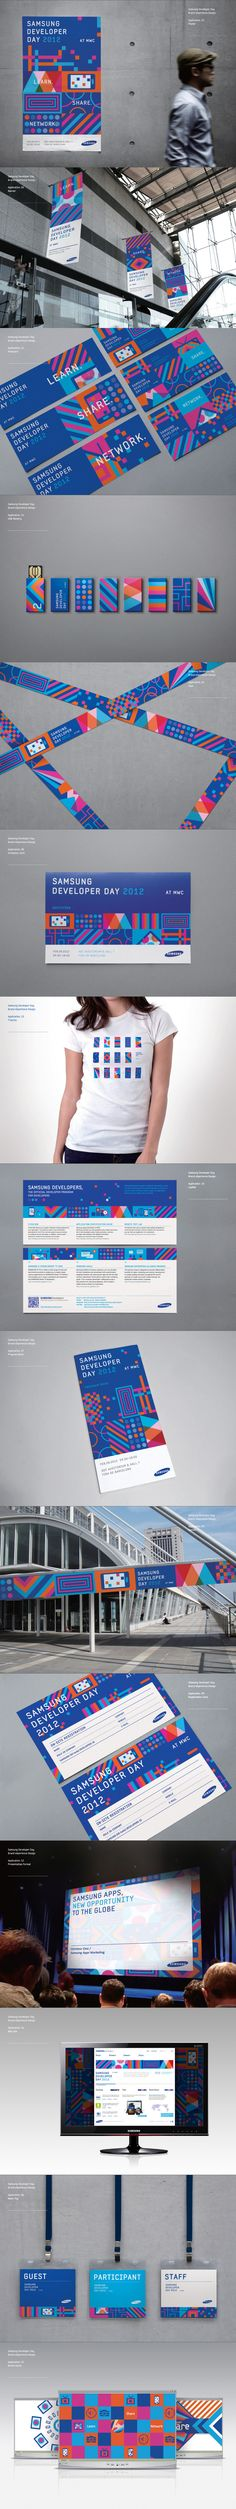 SAMSUNG DEVELOPERS which is a platform brand to share the latest information with developers all over the world. The challenge was to ensure the brand identity and create communication tools such as a new B.I to make interactive communication through its …